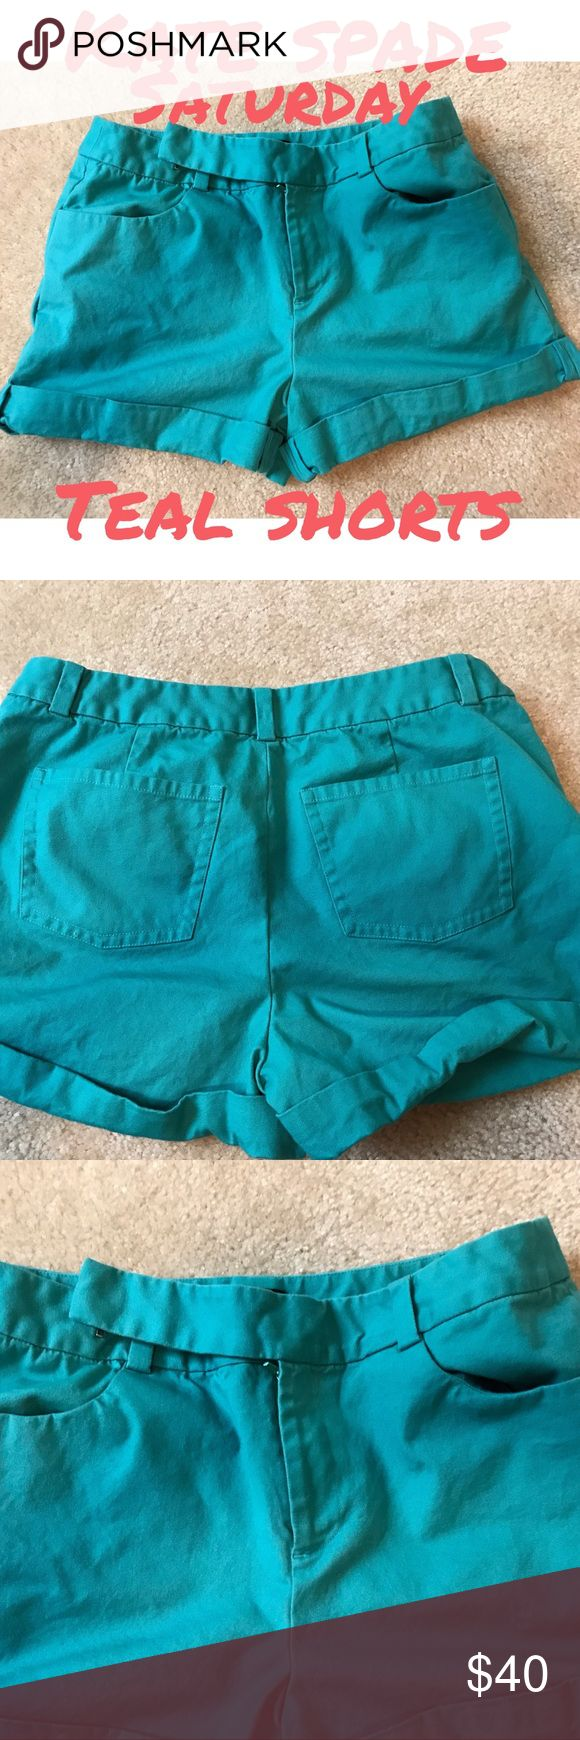 Kate Spade ♠️ Saturday teal shorts Kate Spade ♠️Saturday teal shorts with cuffs at bottom with 2 pockets in front and 2 in back...EUC.. about 15 in flat at waist..about 6 in rise..about 6.5 in inseam (about 5 in to top of cuff) (1/2/18) kate spade Shorts